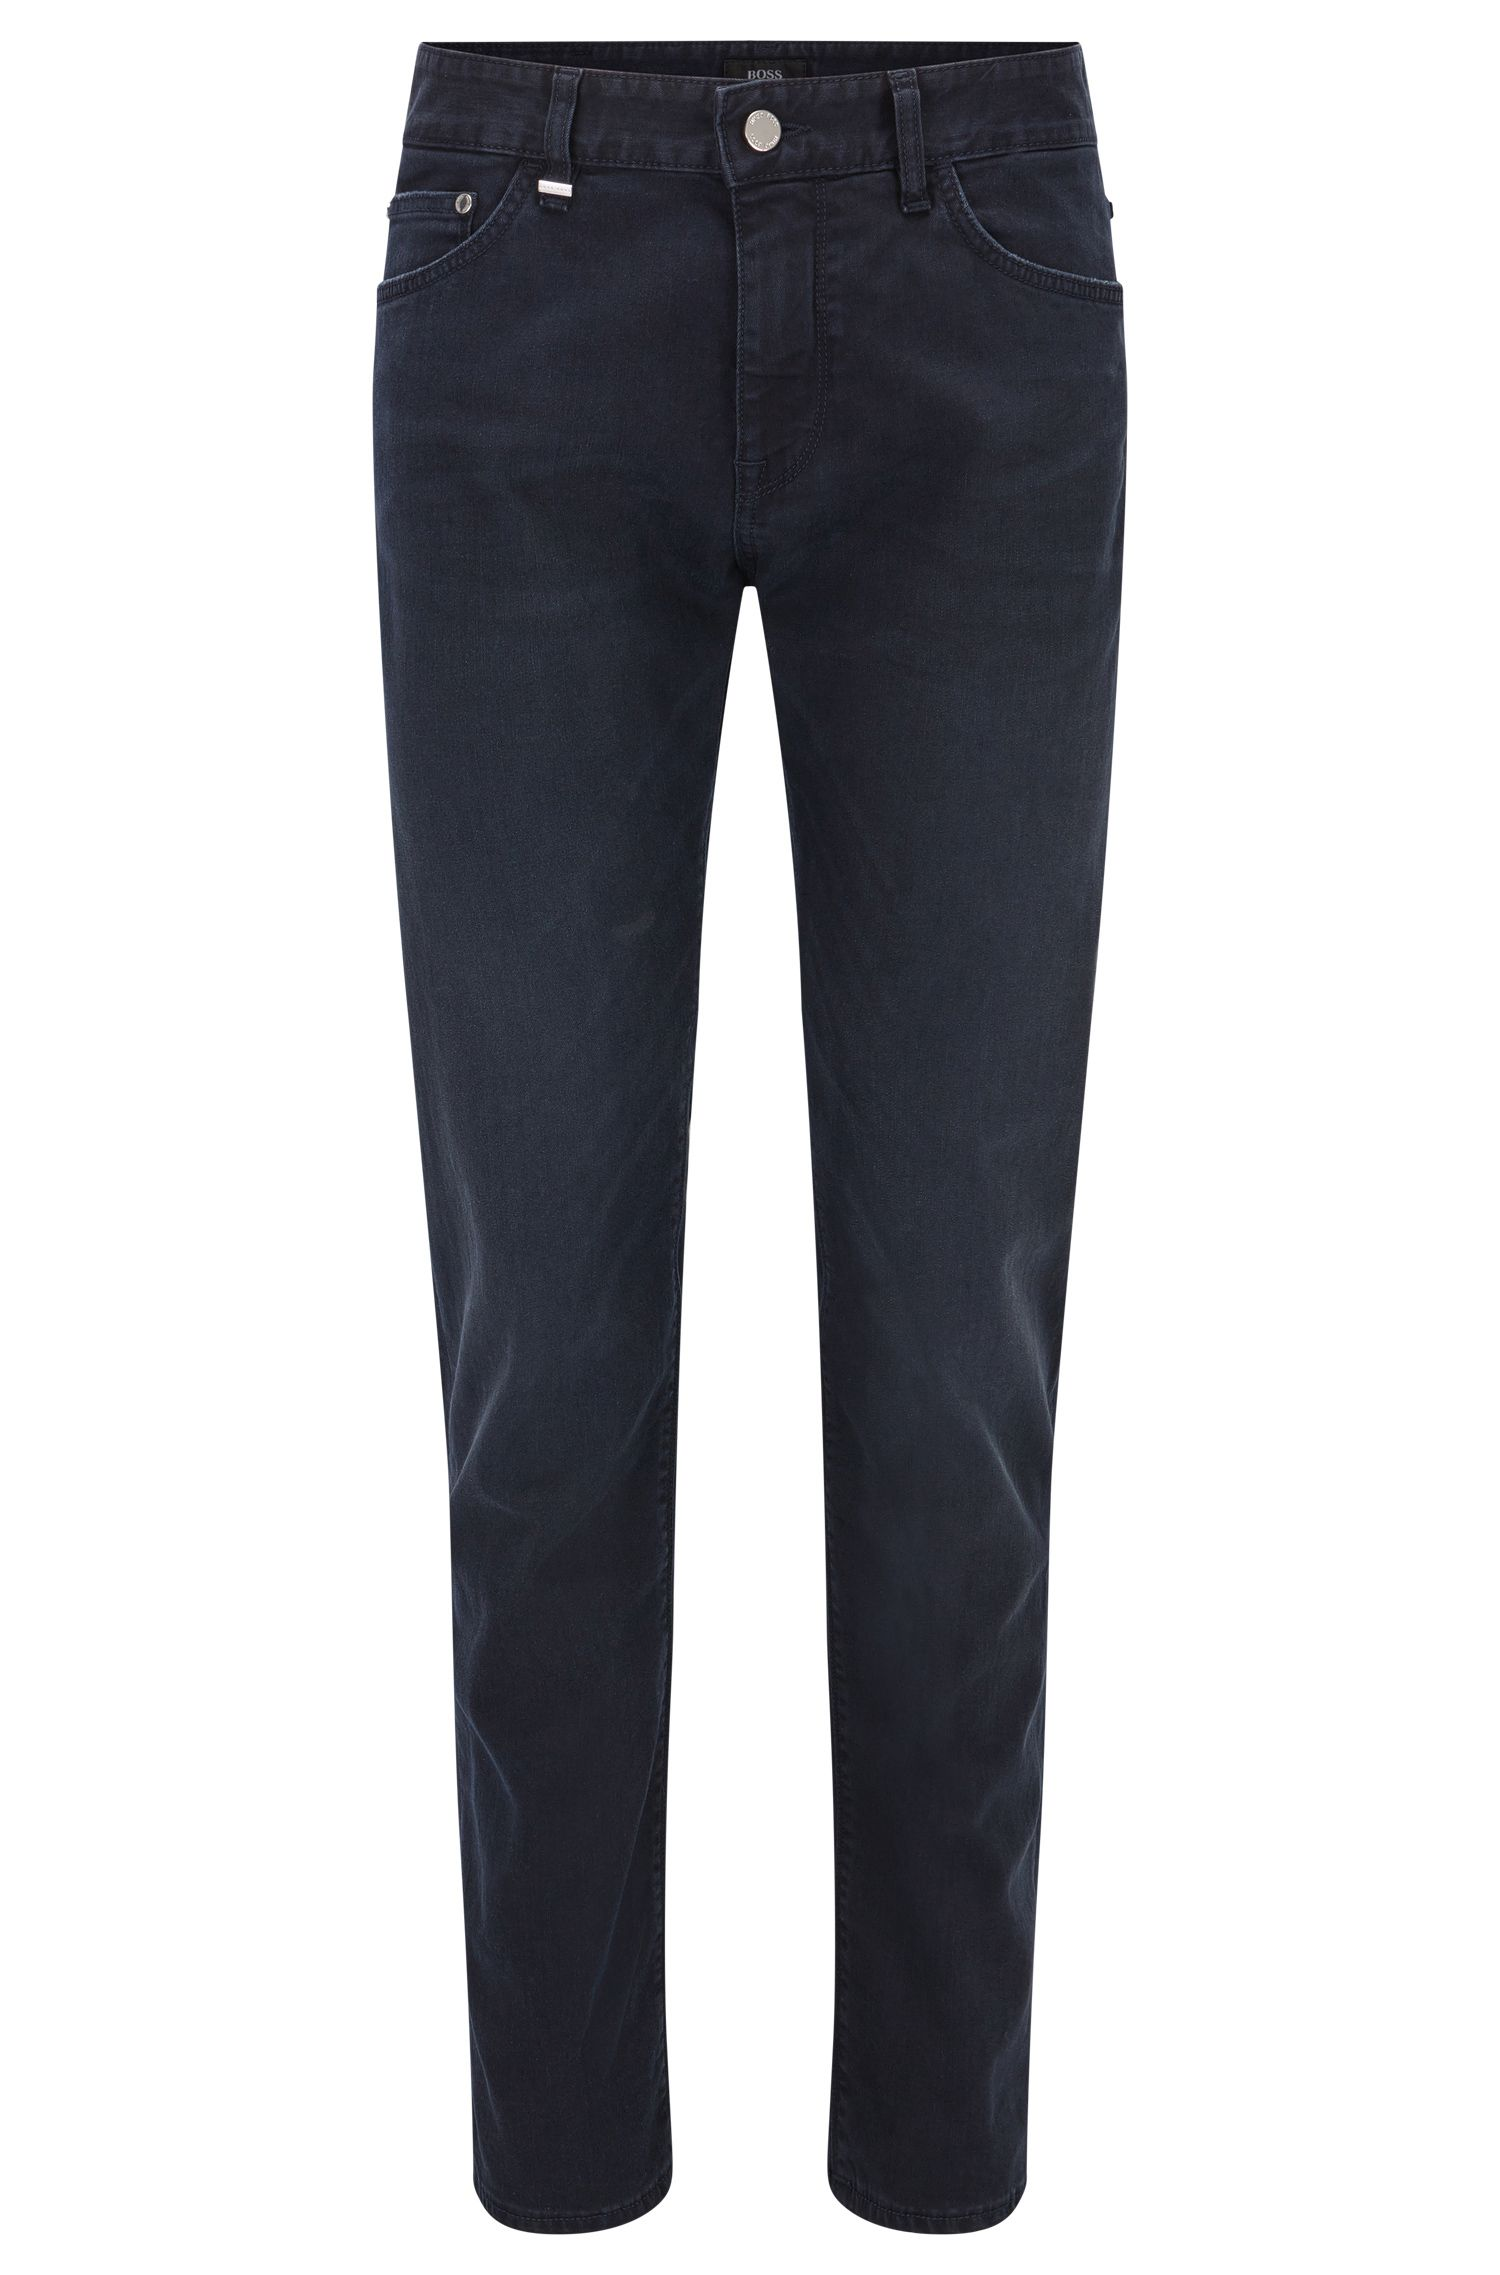 Regular-fit dark blue mid-washed jeans in stretch denim